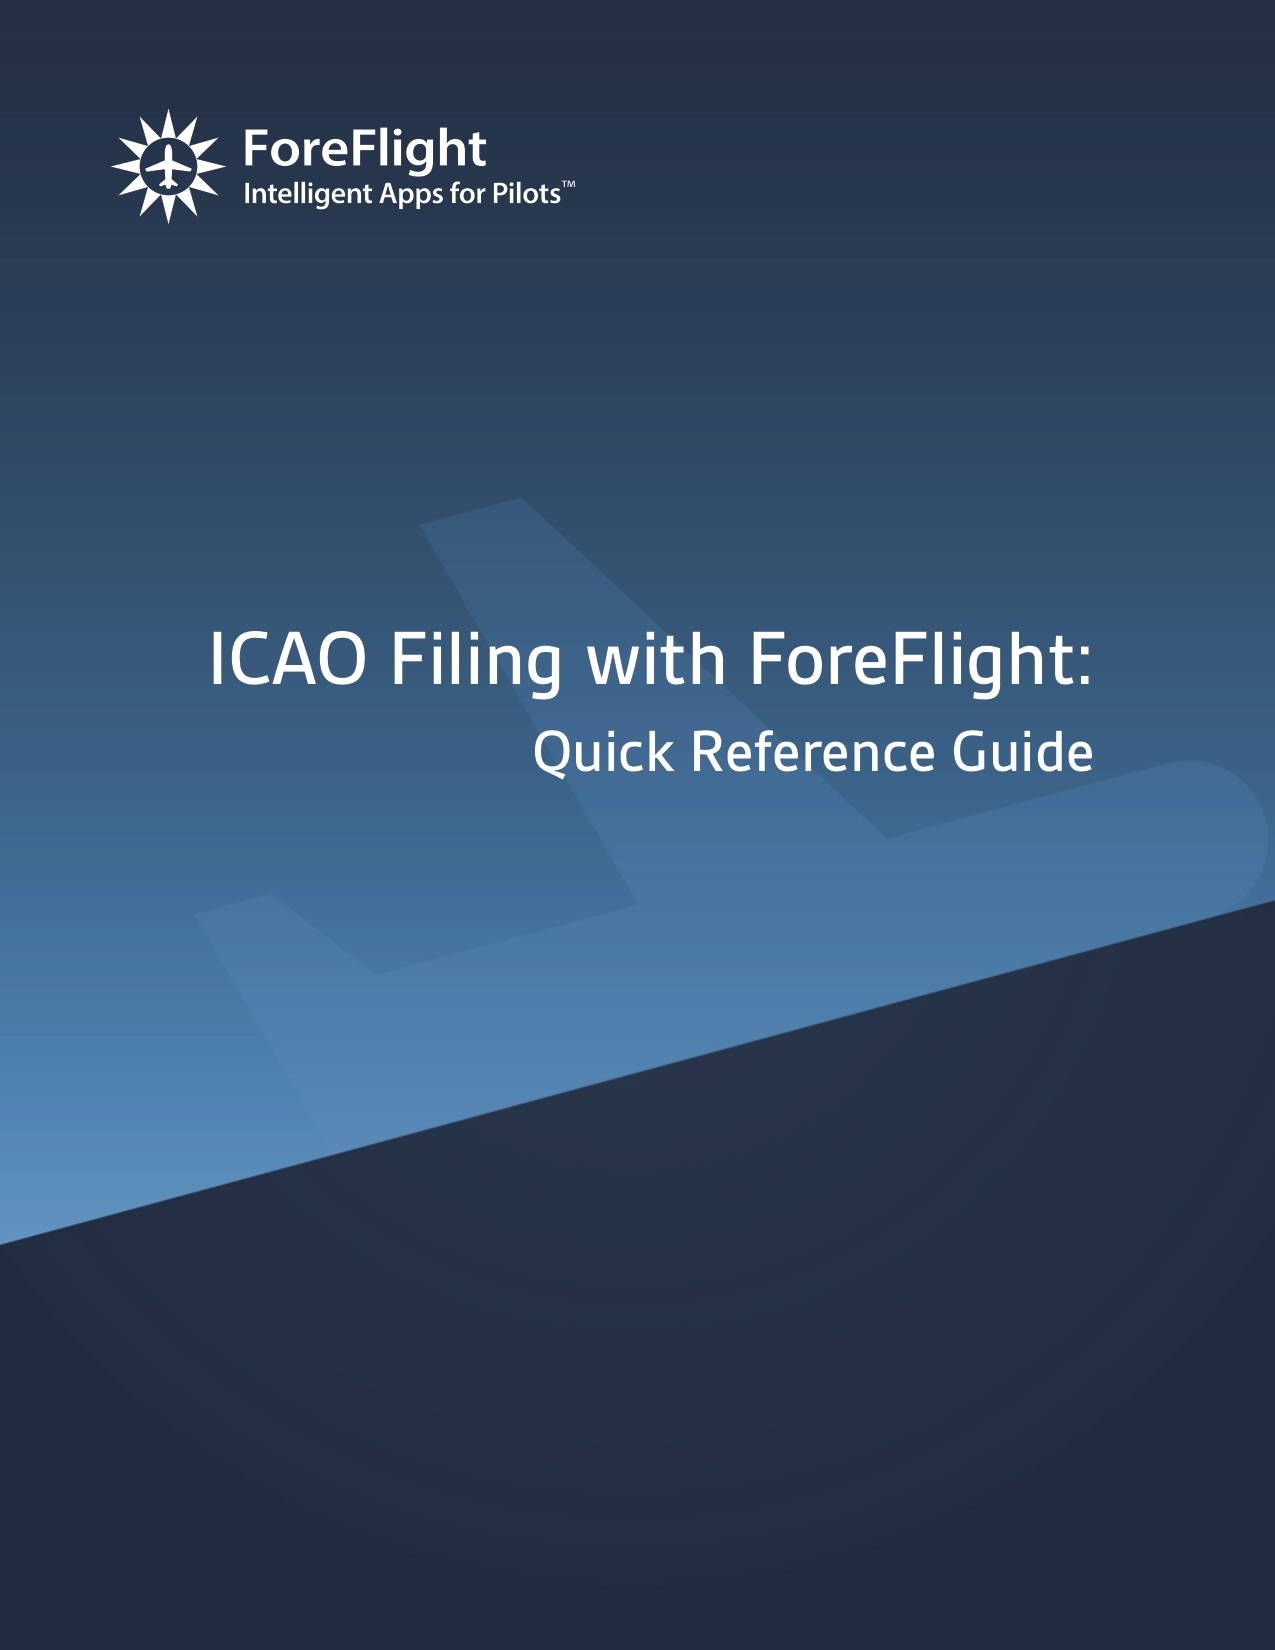 ICAO-Quick_Reference_Guide.jpg